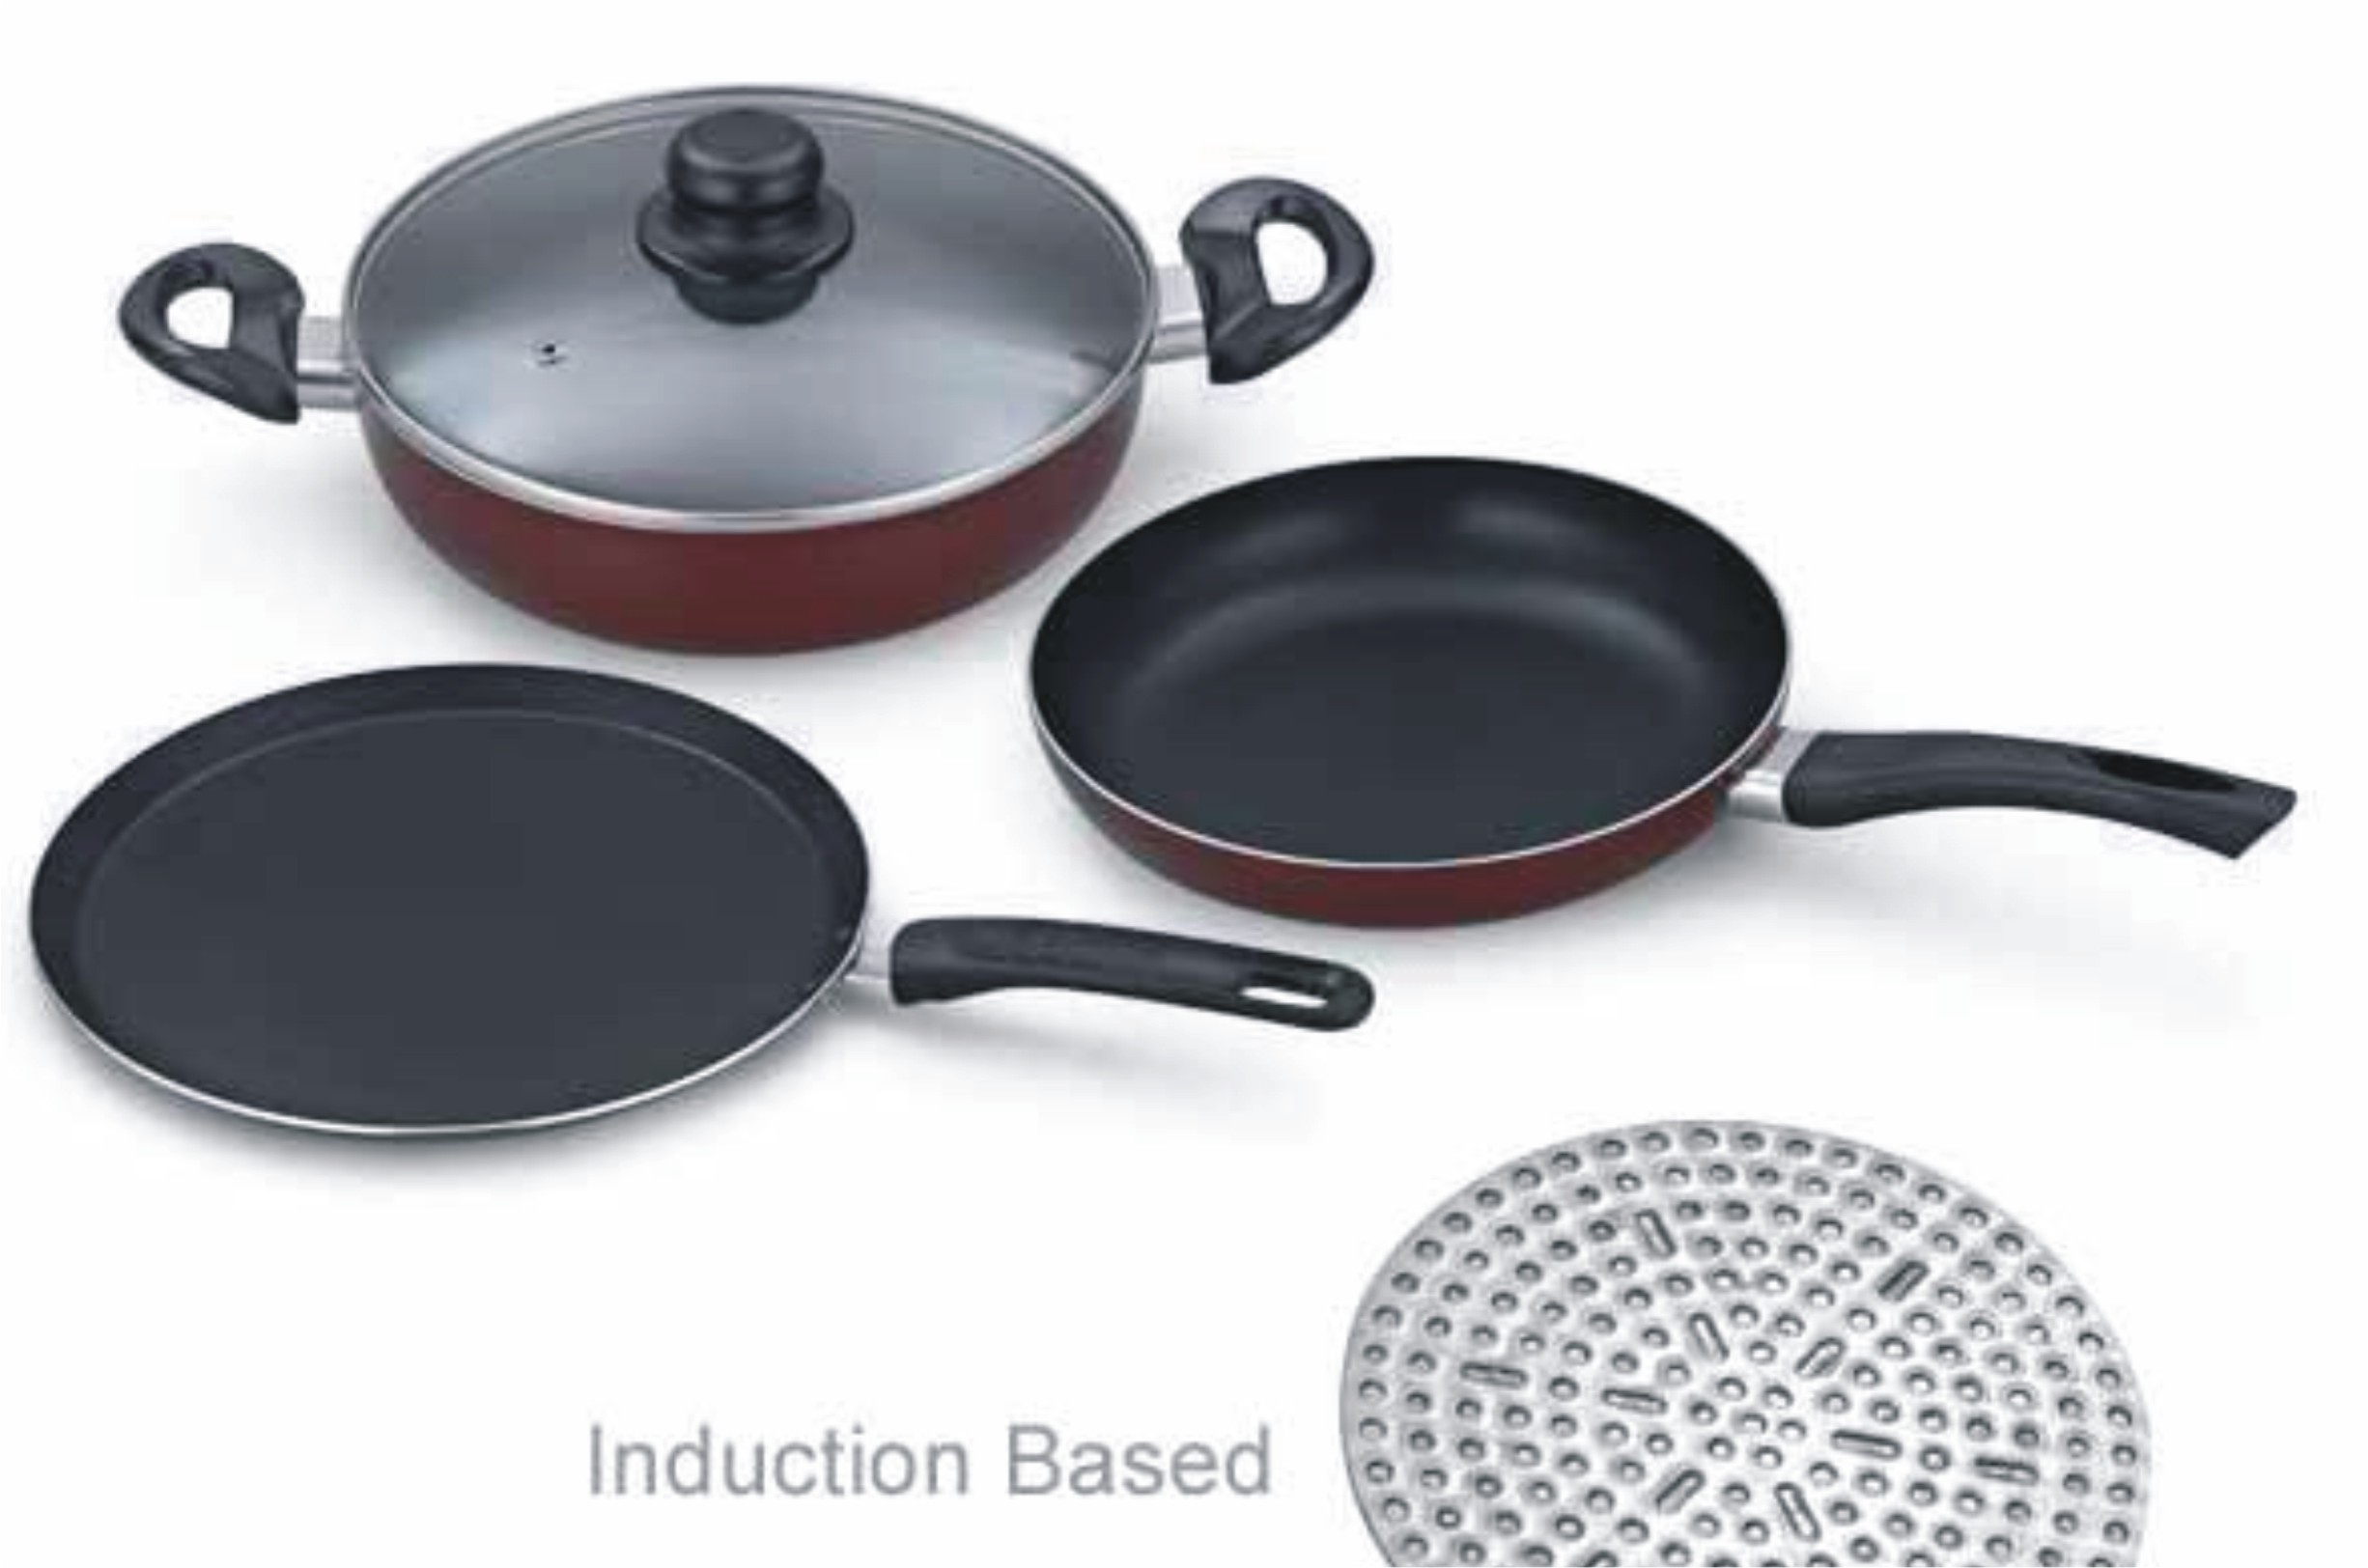 padmini essentia cookplus induction and gas stove cookware. Black Bedroom Furniture Sets. Home Design Ideas